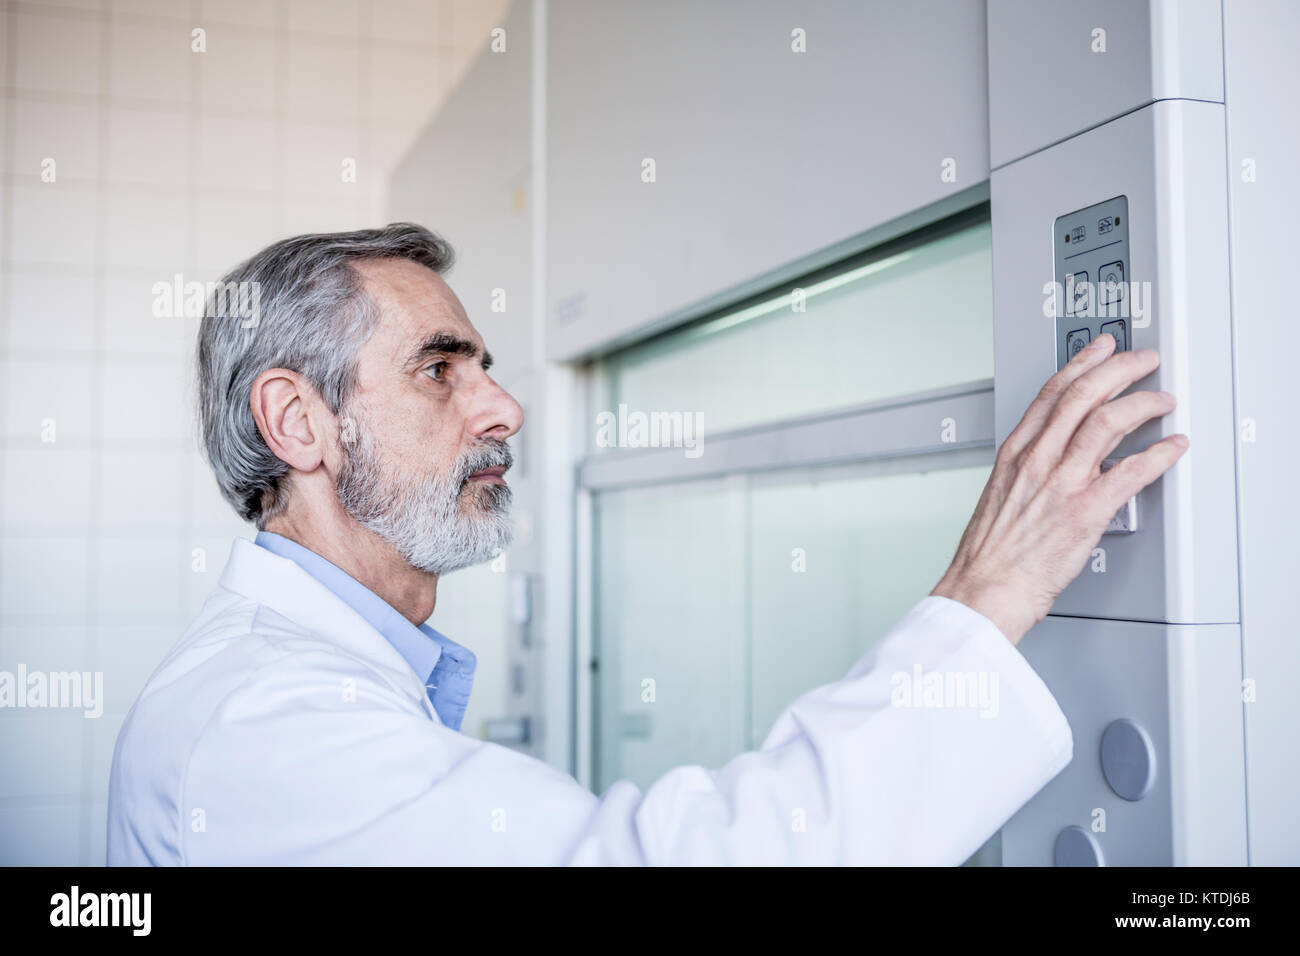 Scientist in lab handling security system - Stock Image